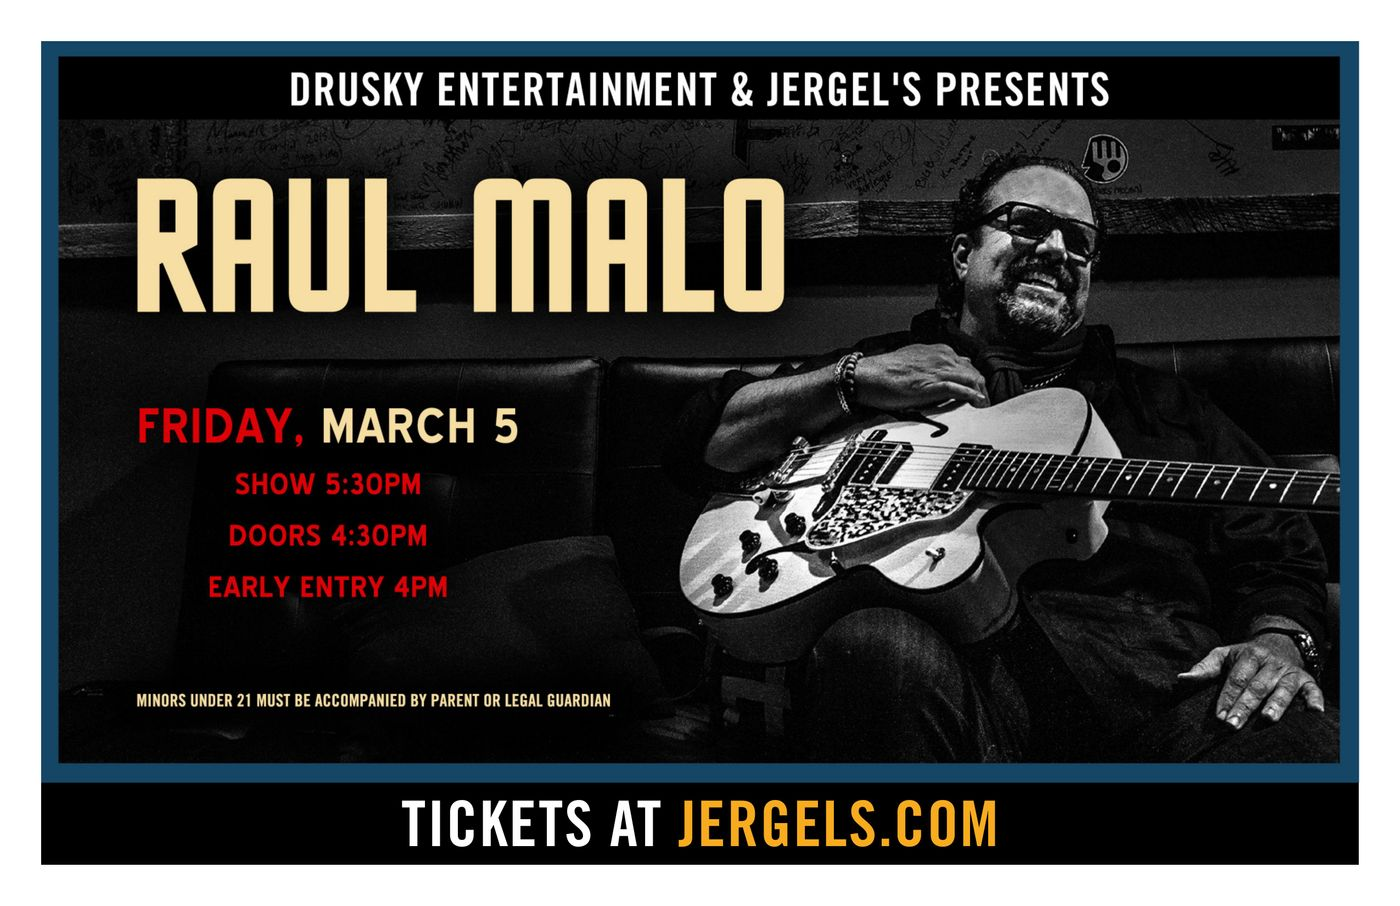 Raul Malo_New Photo_Early Show_17x11 Drusky Poster.jpg